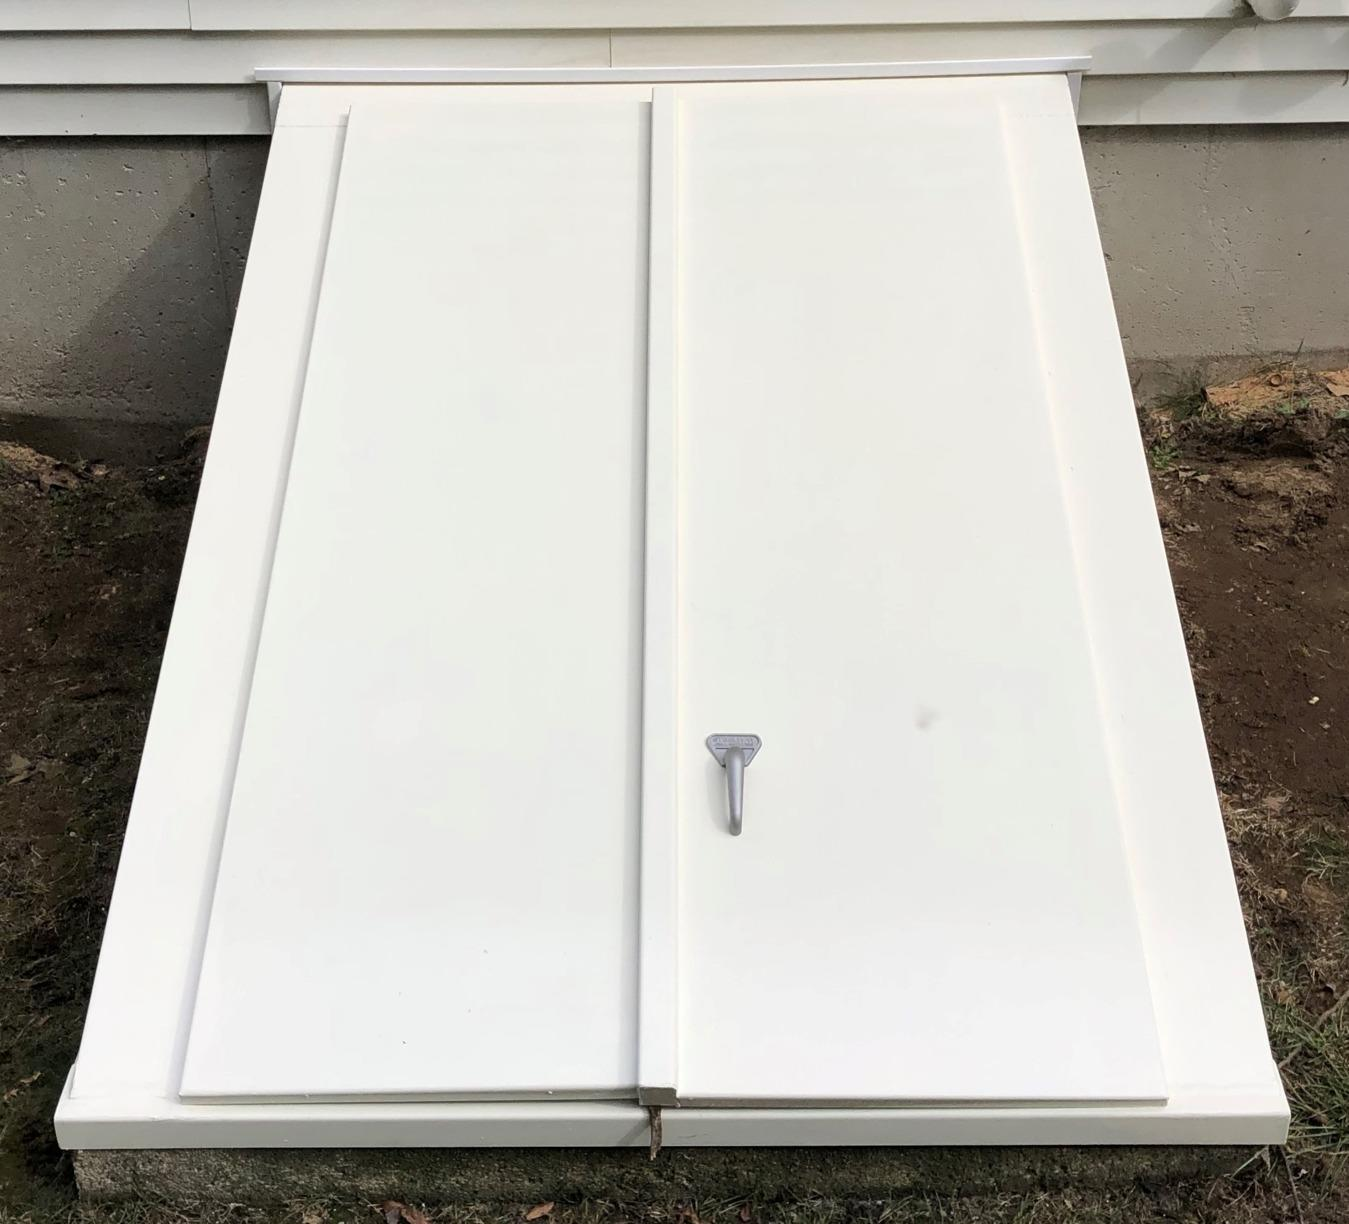 Windham, NH - Replacement Bulkhead with Custom Paint - After Photo